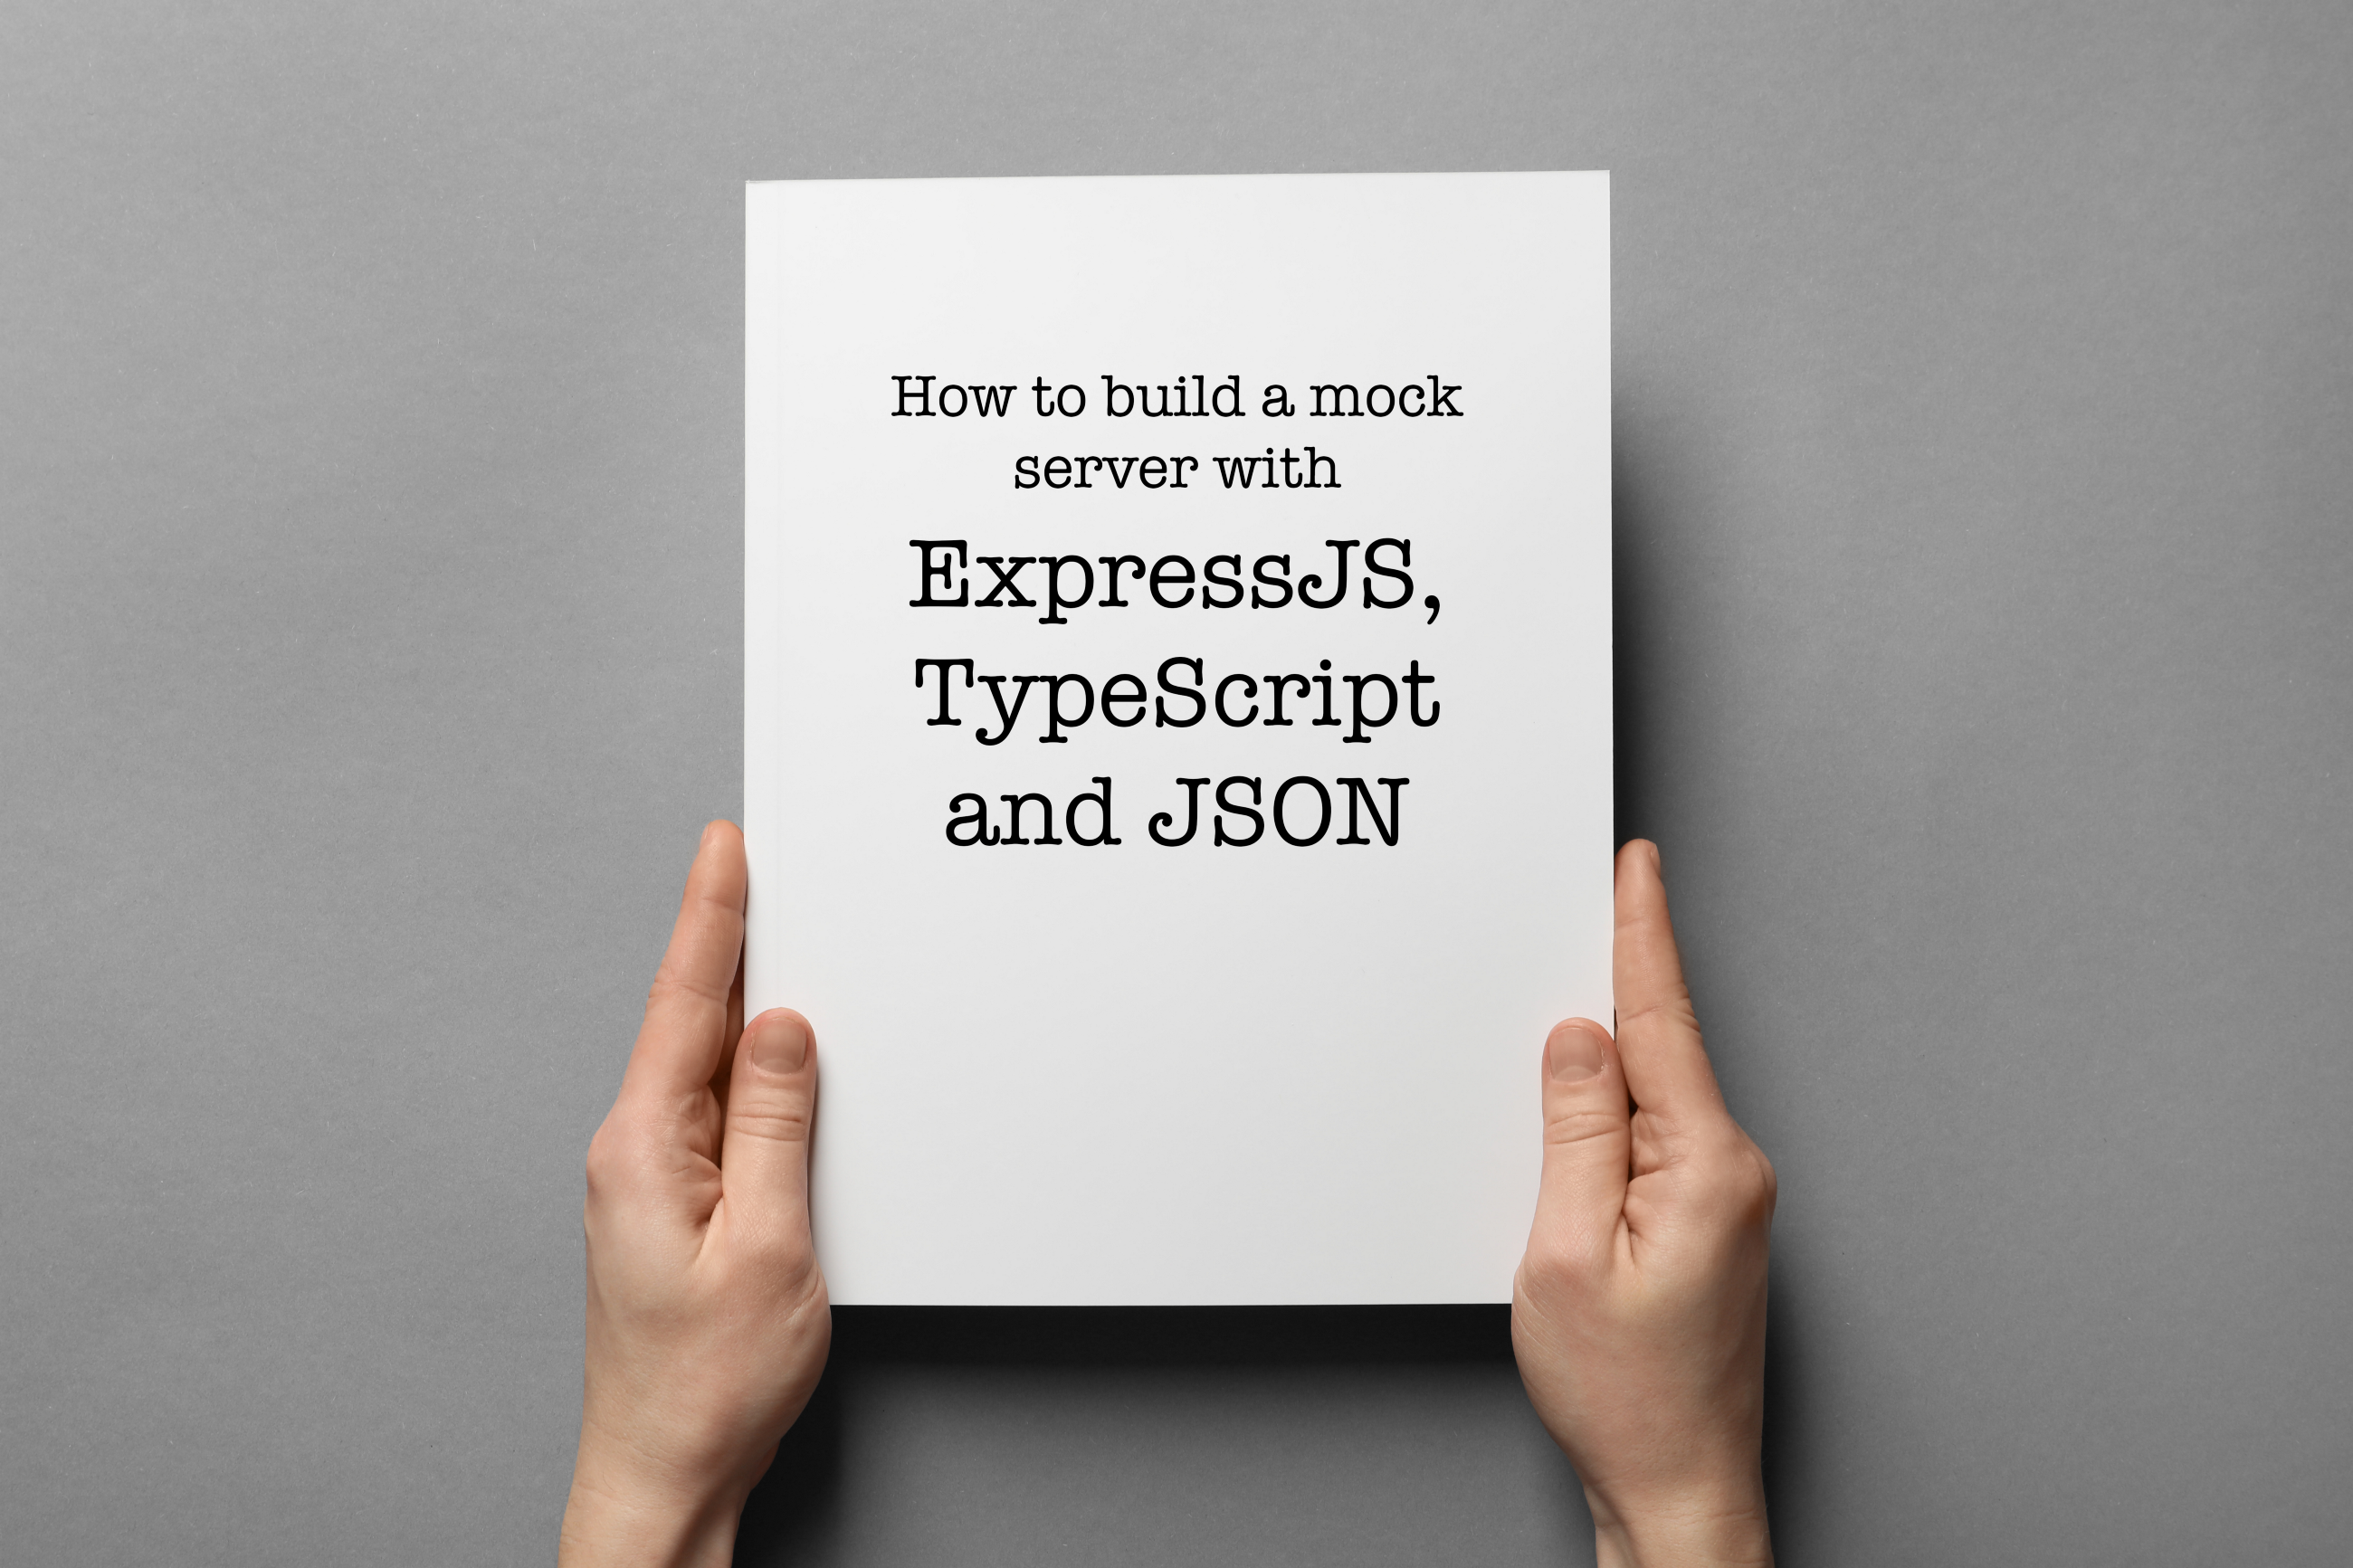 How to quickly build a mock server for your API with ExpressJS, TypeScript and JSON